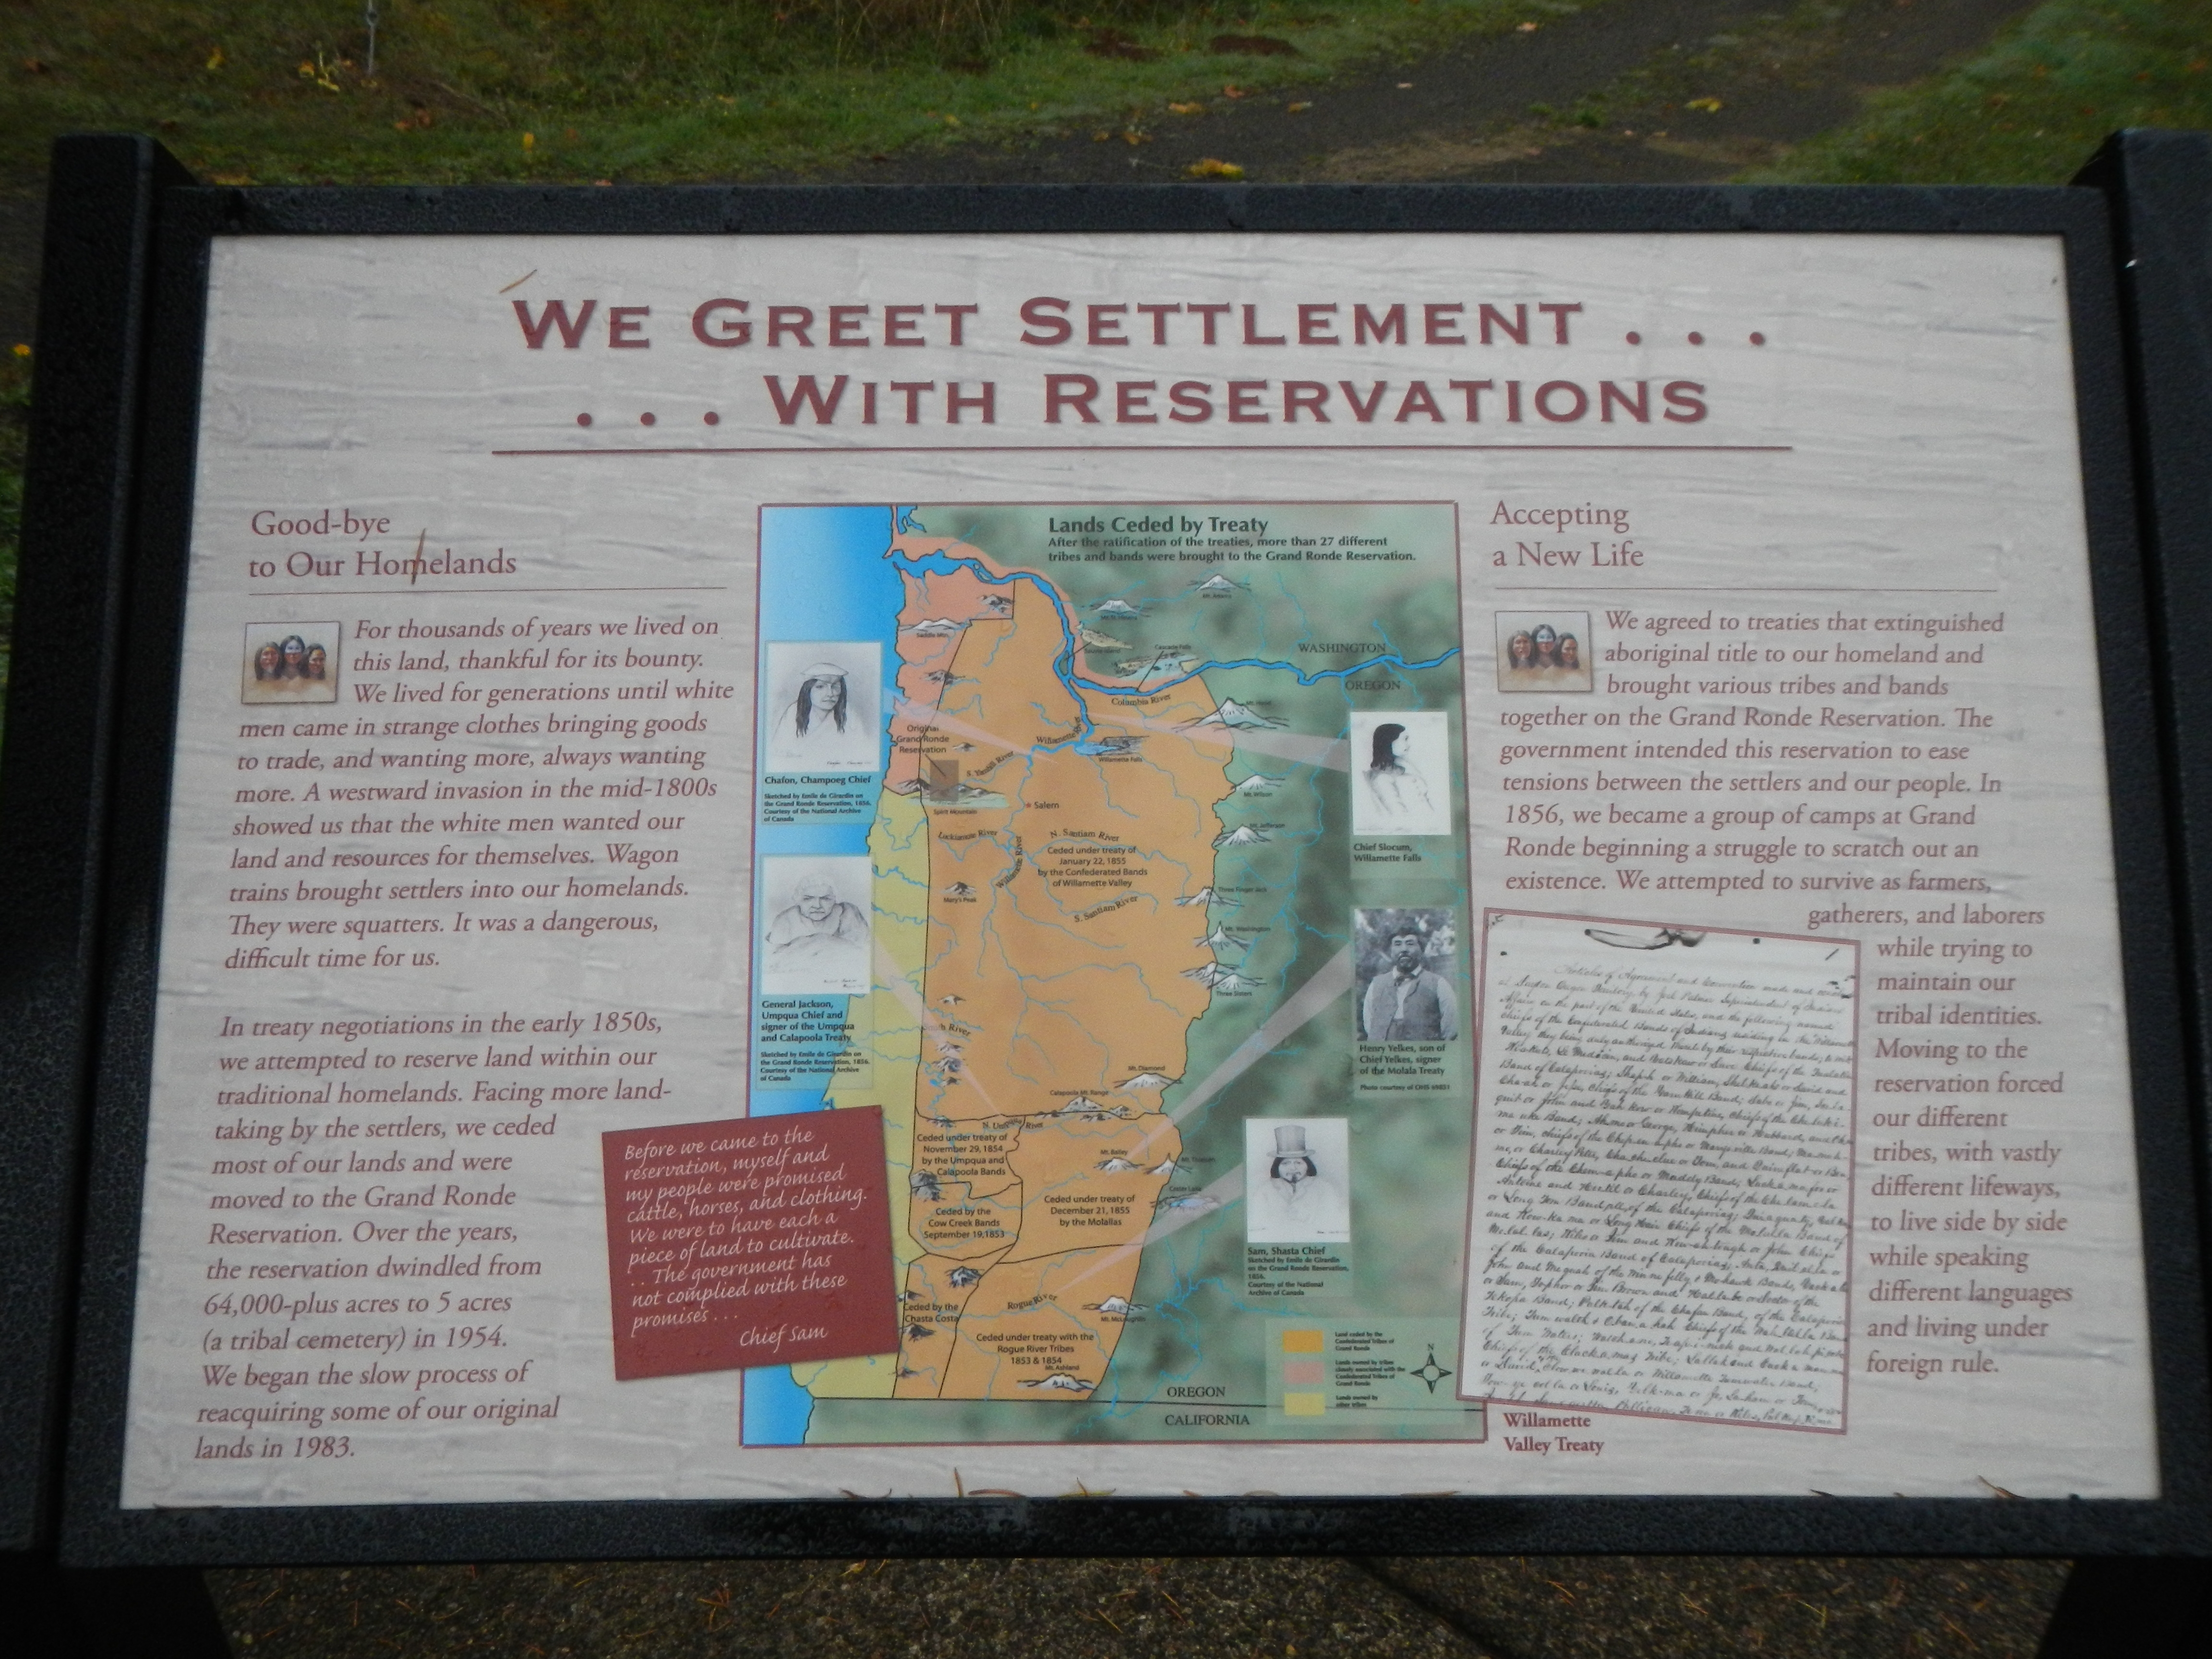 We Greet Settlement ... ... With Reservations Marker